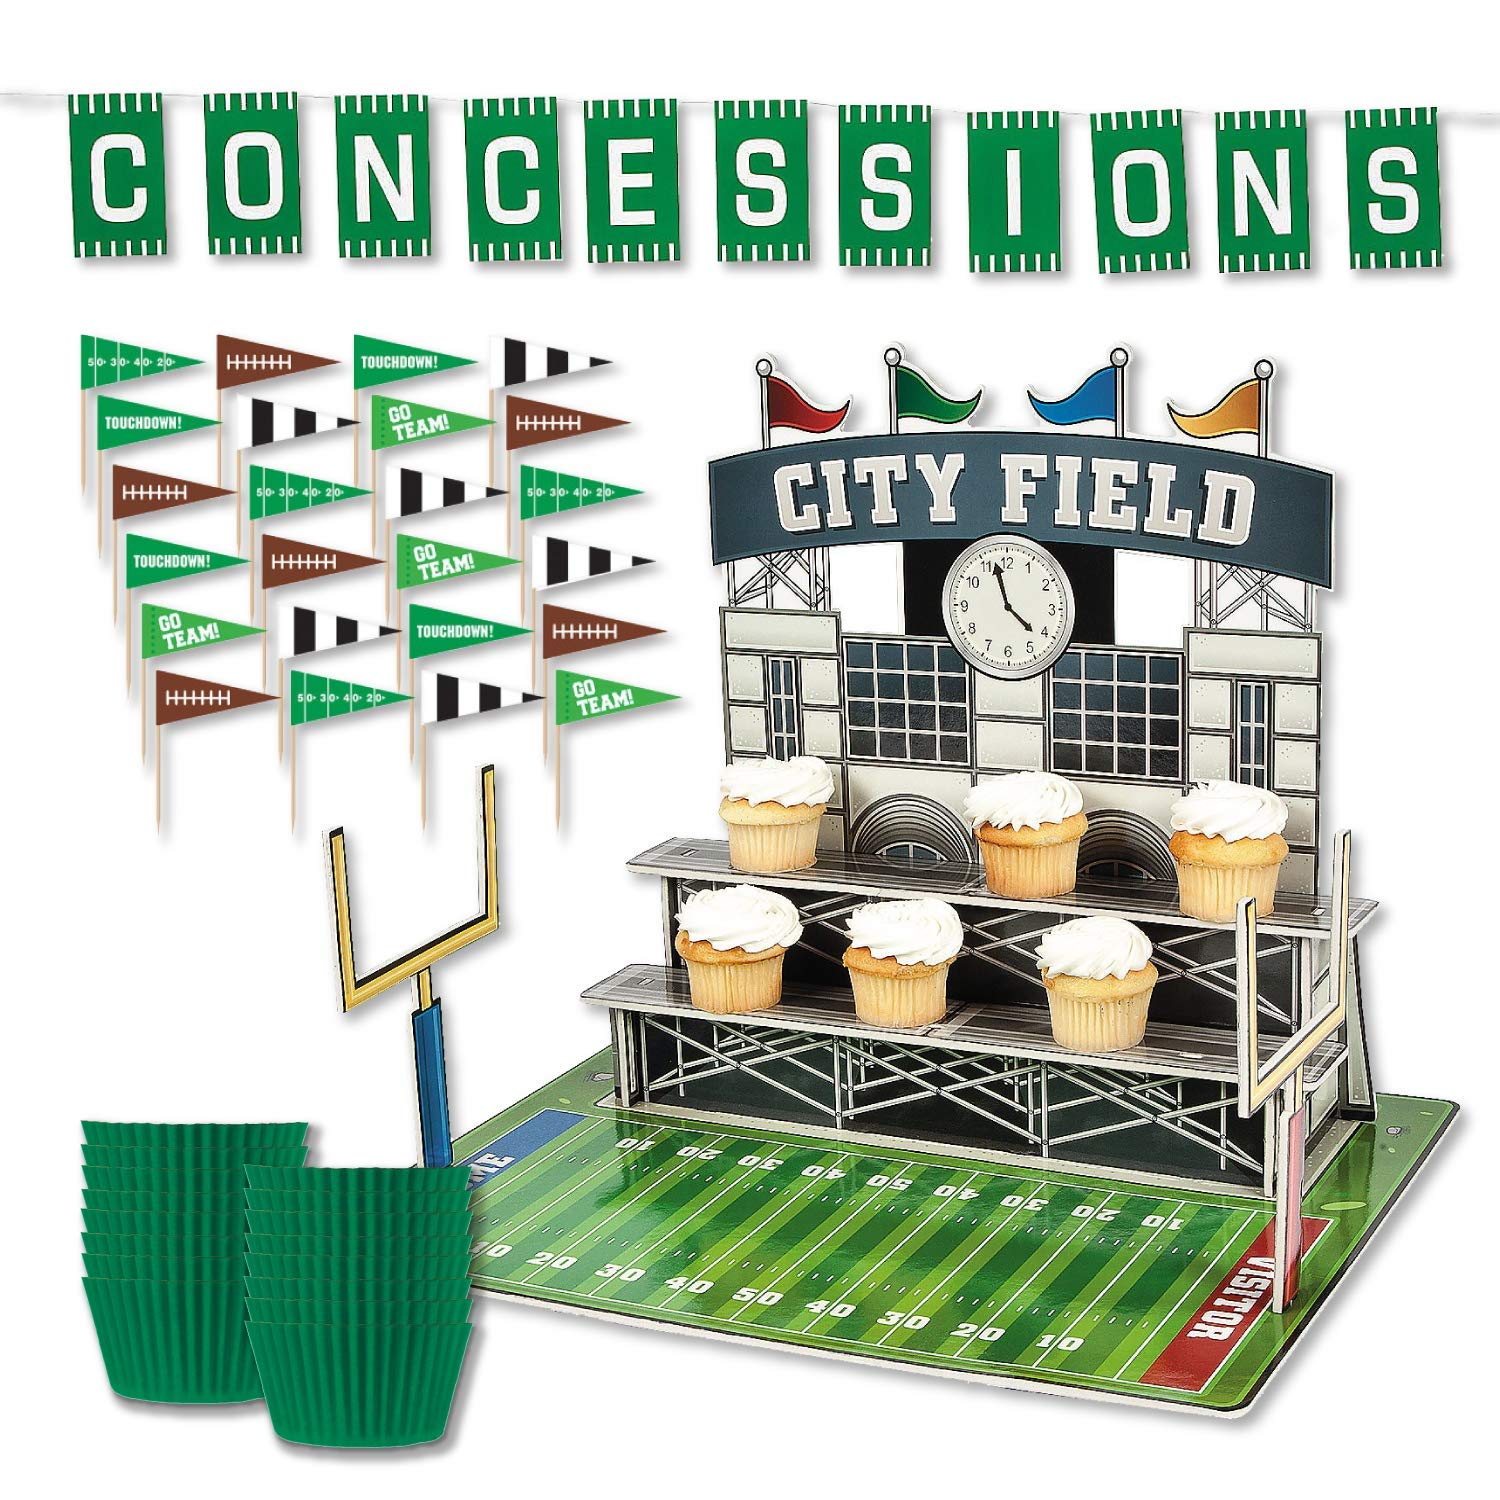 Football Stadium Cupcake Stand Display Kit with Picks, Liners, and Banner